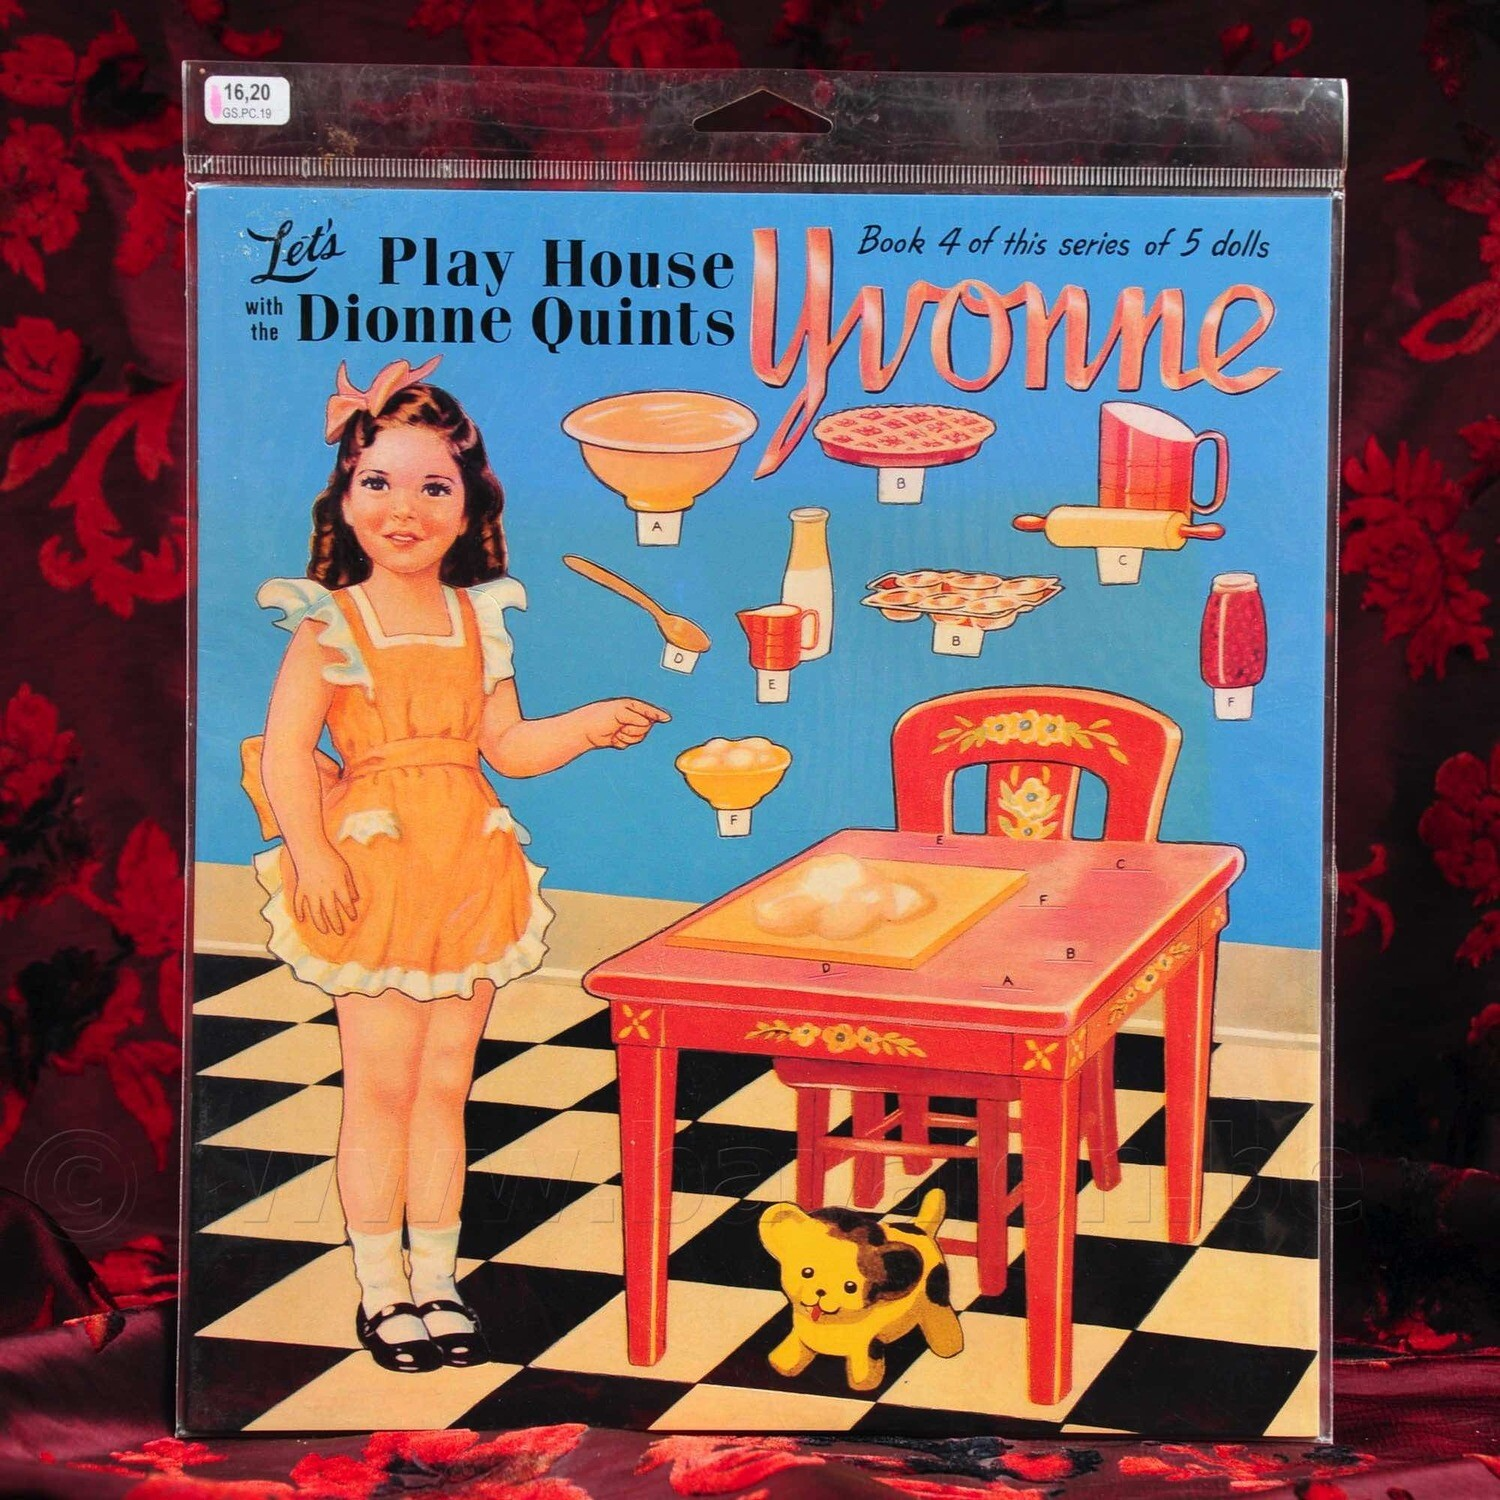 Play House Dionne Quints 'Yvonne' - N°4